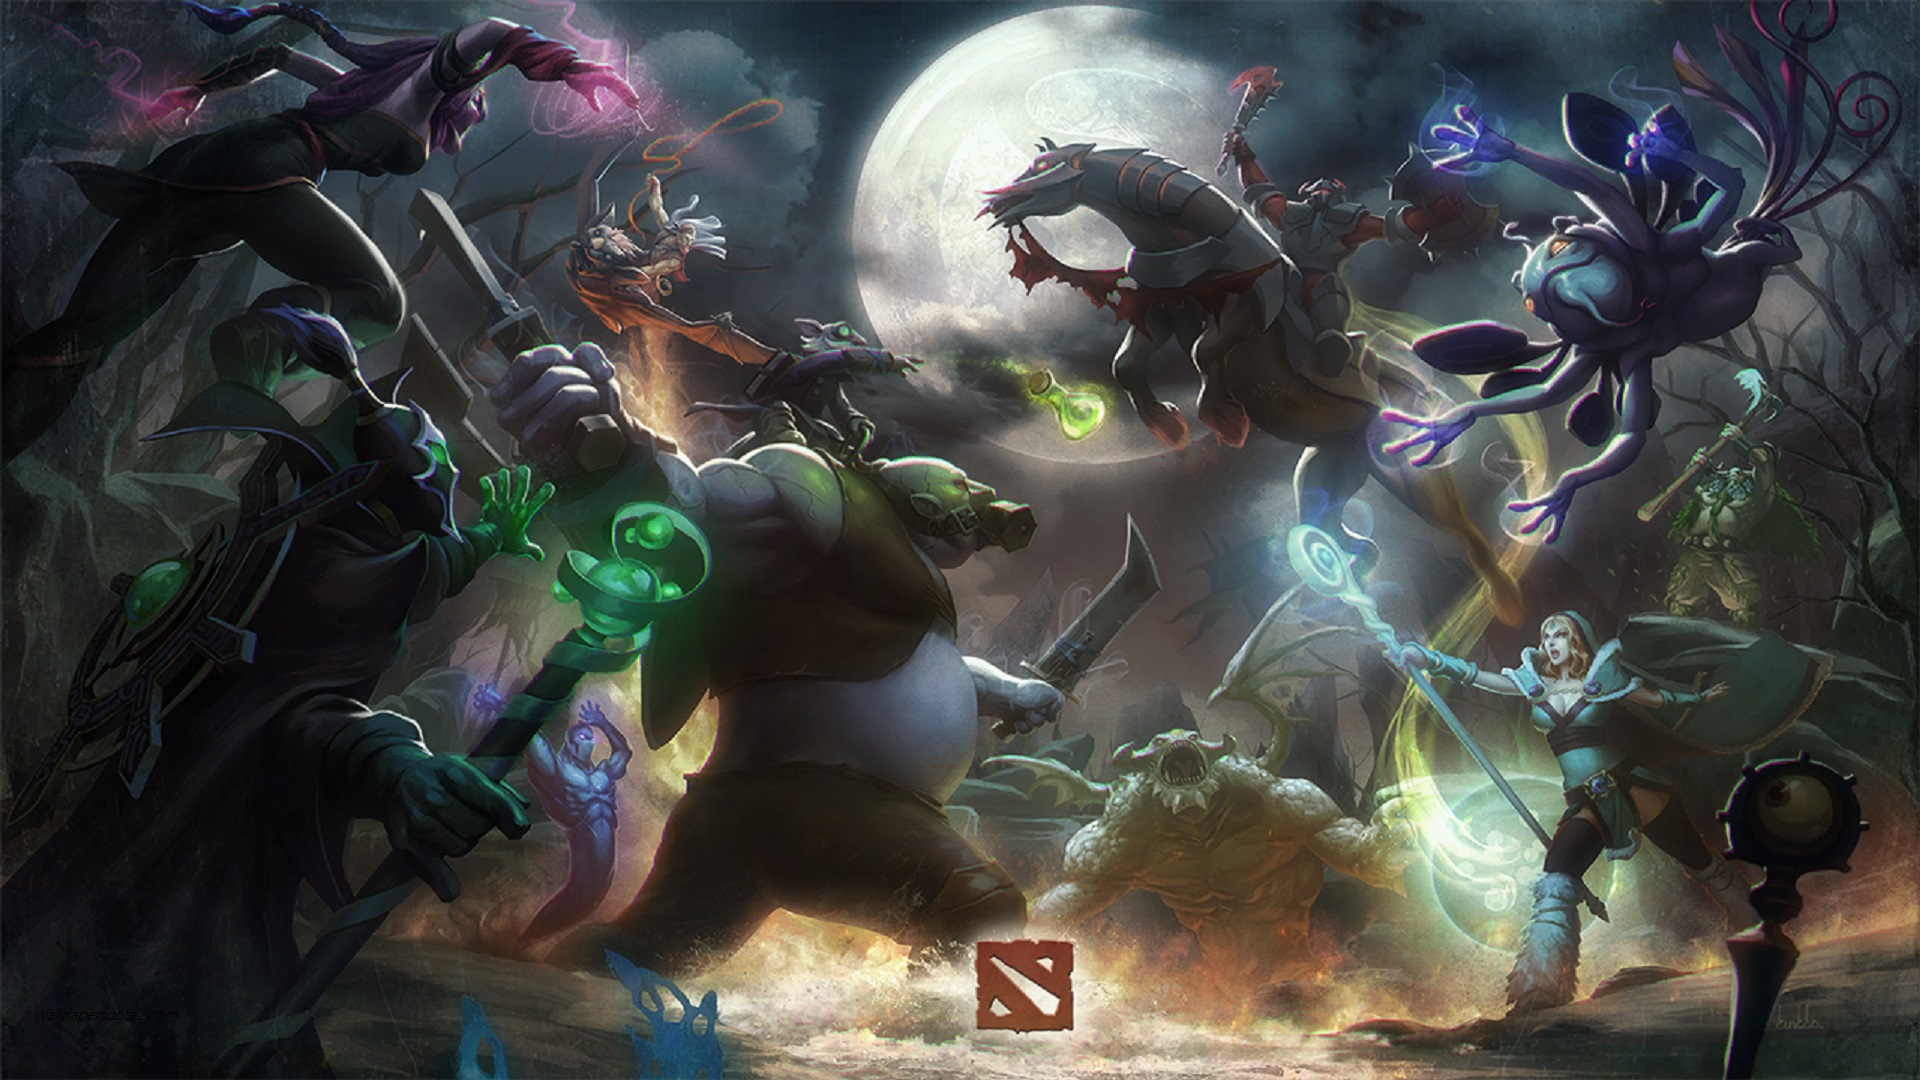 Heroes DOTA 2 wallpaper desktop download